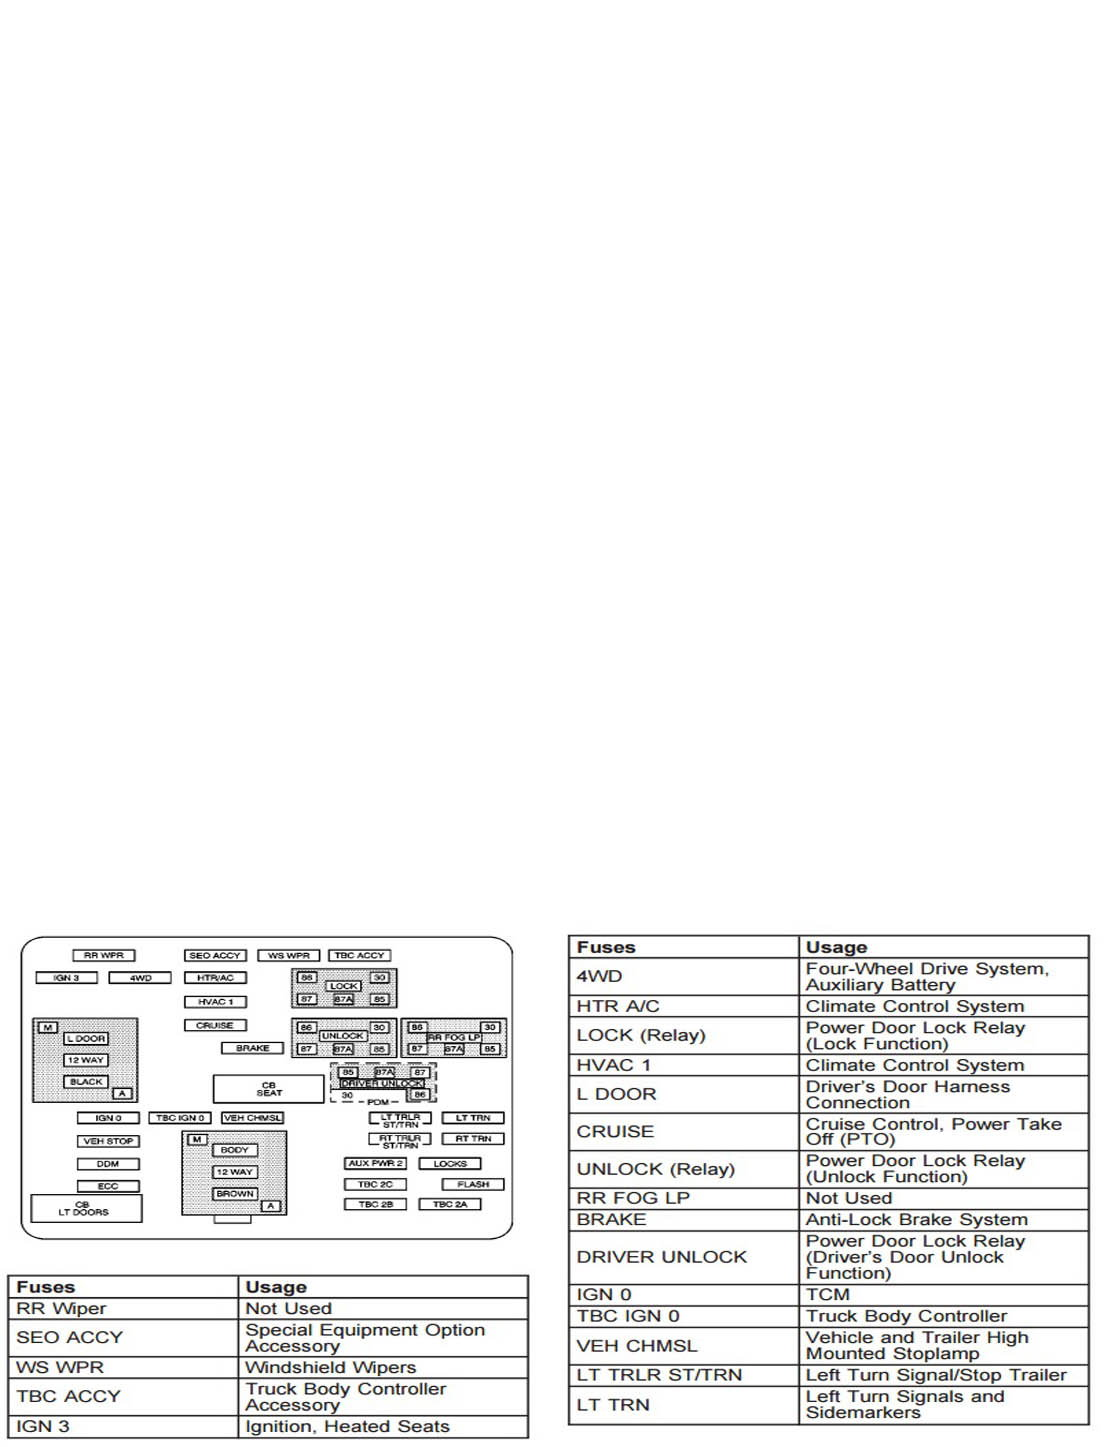 MMMay 27 Fuse Box 12 69859 chevrolet silverado gmt800 1999 2006 fuse box diagram chevroletforum Difference Between C3500 and K3500 at panicattacktreatment.co